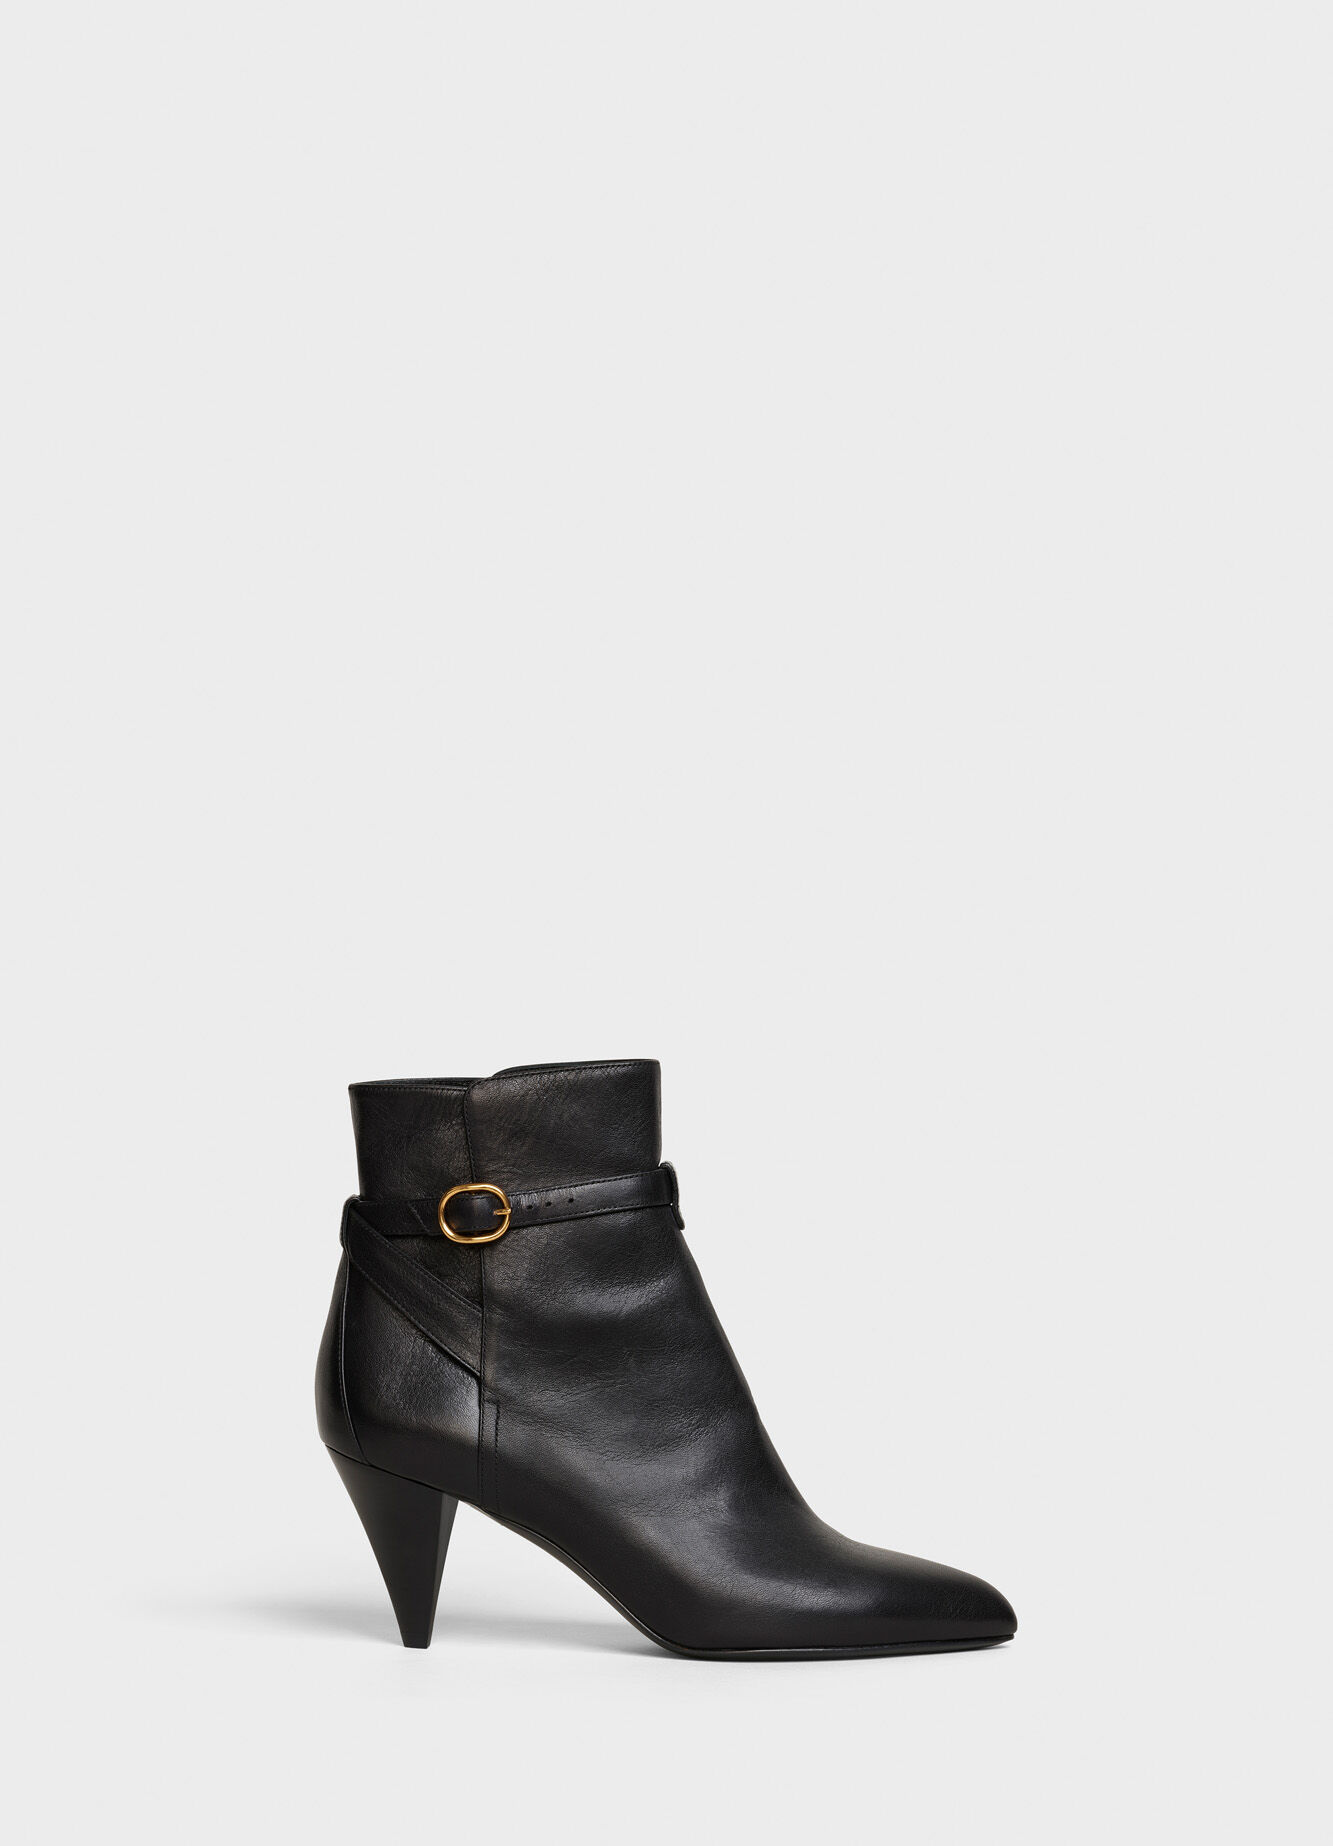 CELINE TRIANGLE HEEL JODHPUR ANKLE BOOT IN CALFSKIN